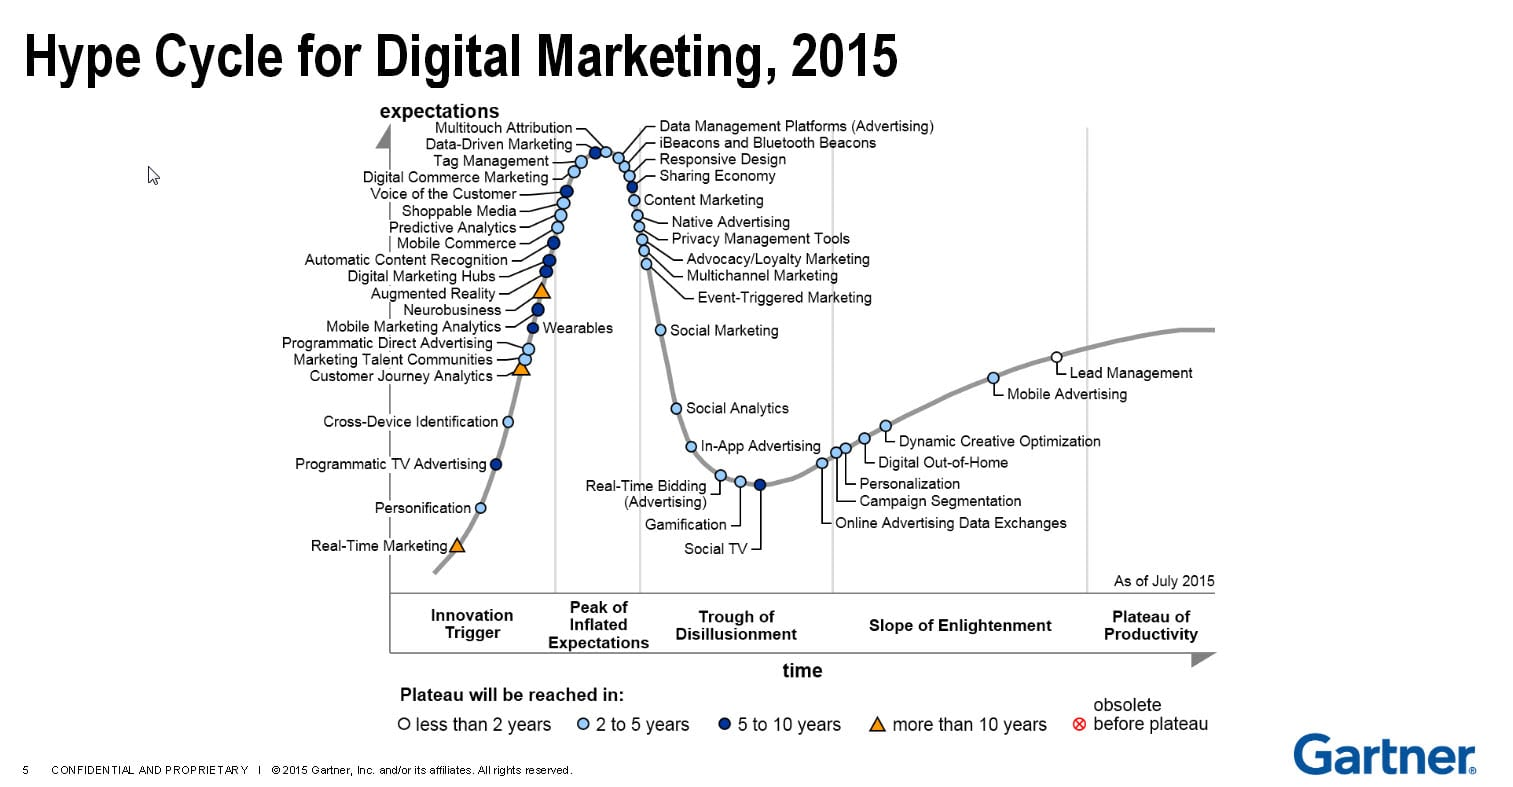 Latest Gartner Hype Cycles - Smart Insights Digital Marketing Advice